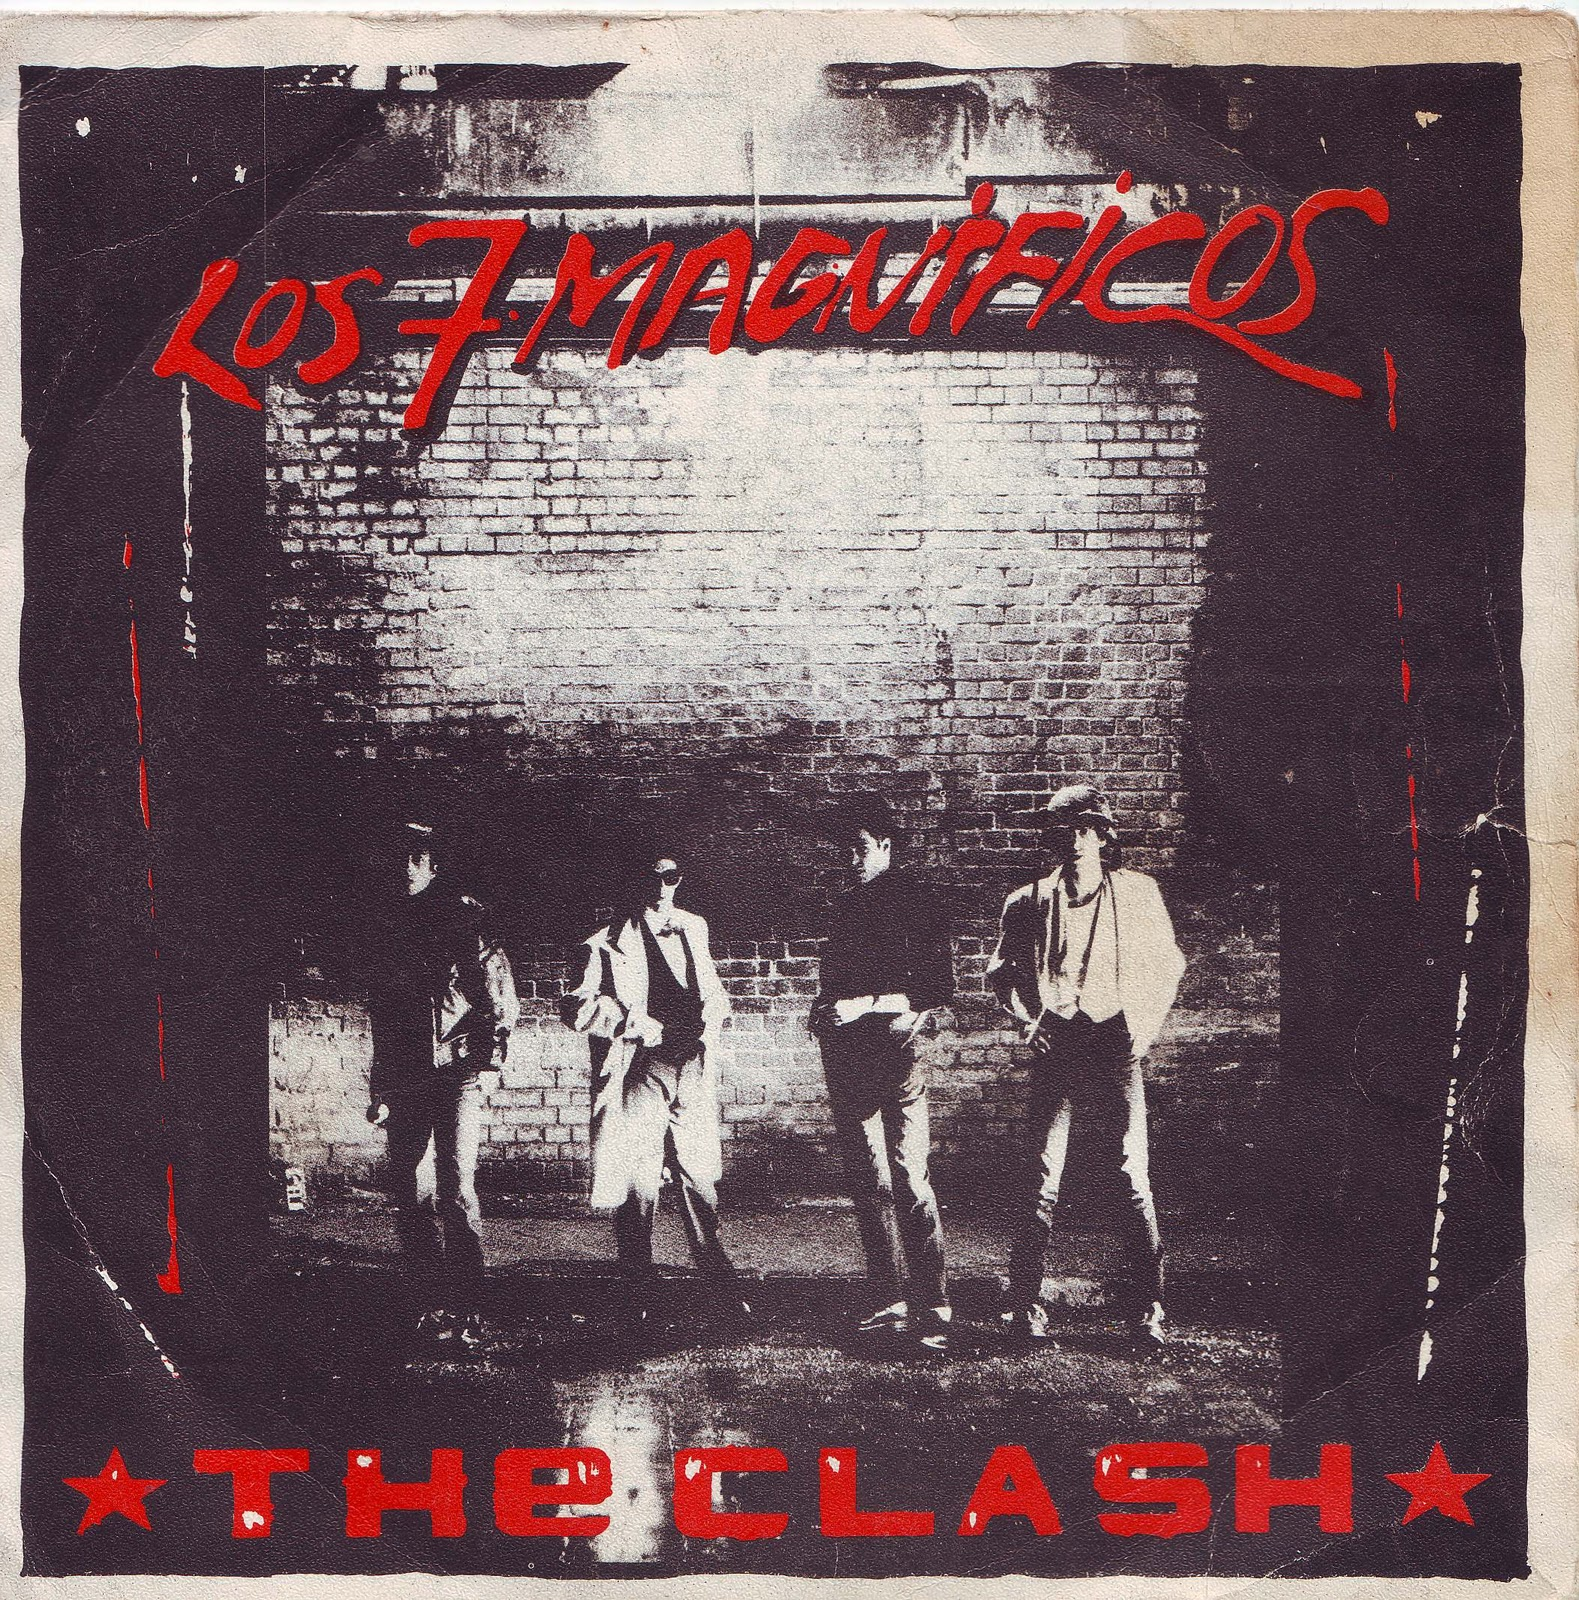 "SPANISH BOMBS: The Clash - The Magnificent seven 7"" 1980"